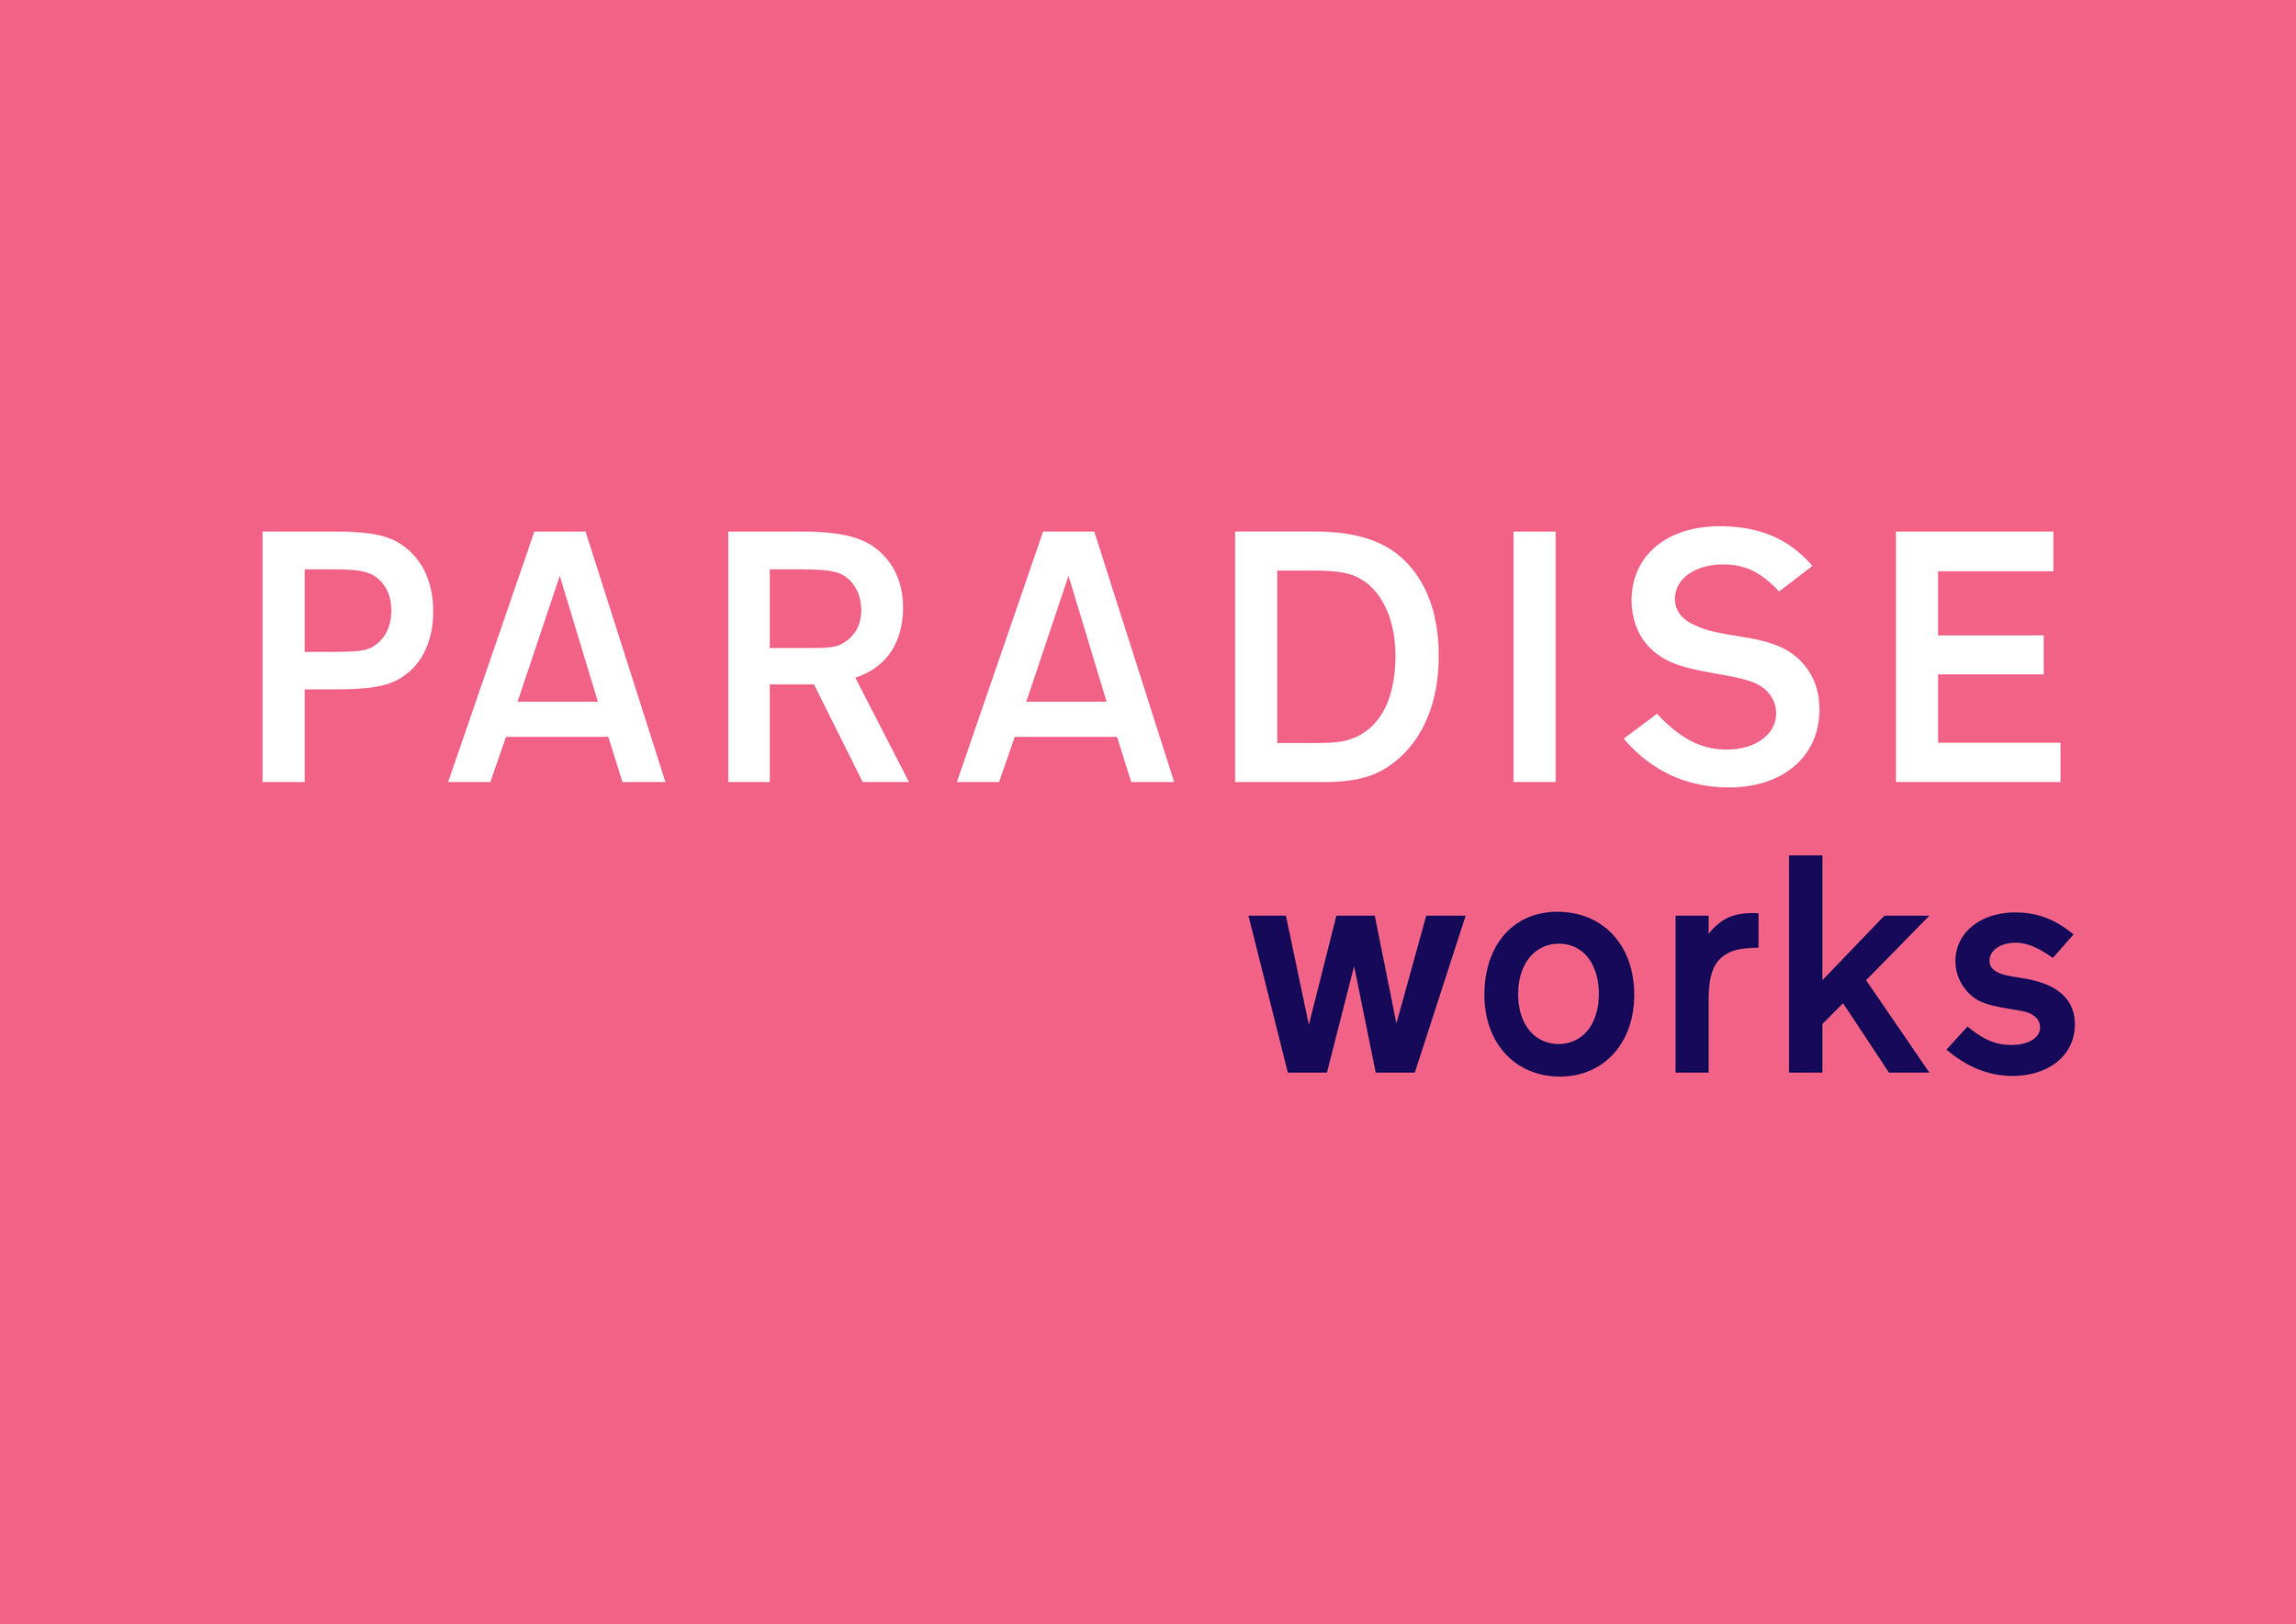 Paradise works logo high res.jpeg